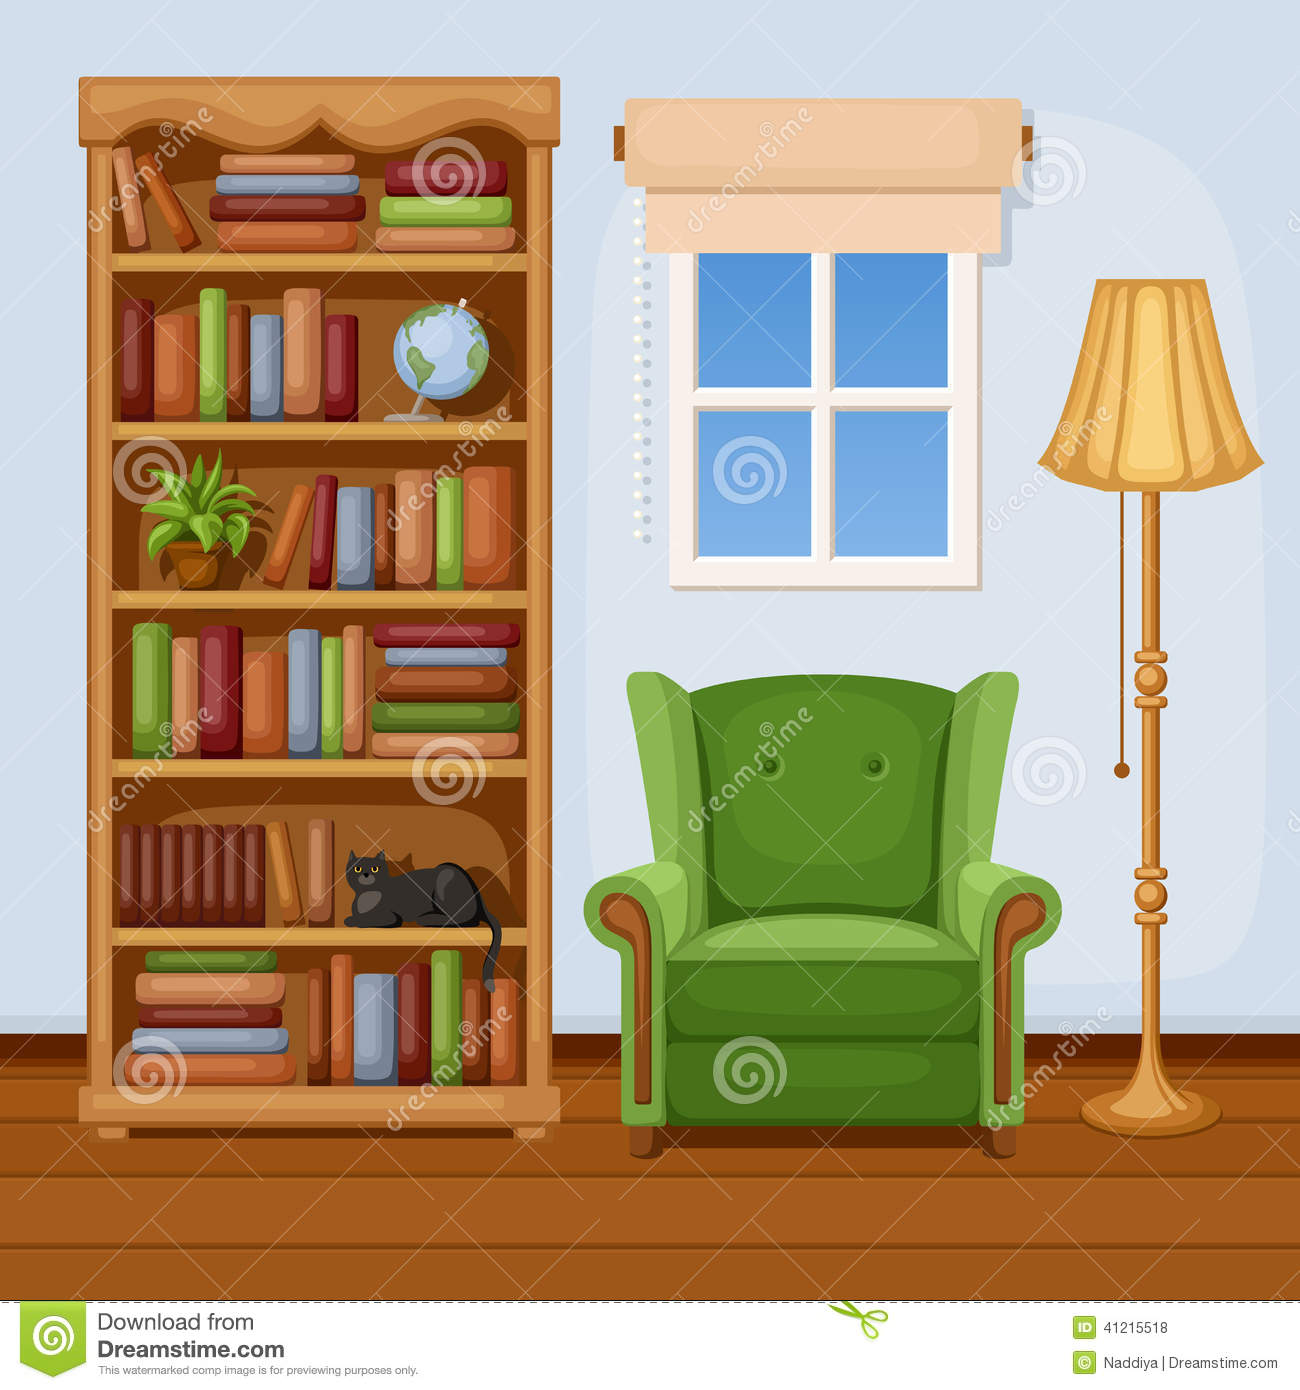 Room Interior With Bookcase And Armchair Vector Illustration Stock Vector Illustration Of